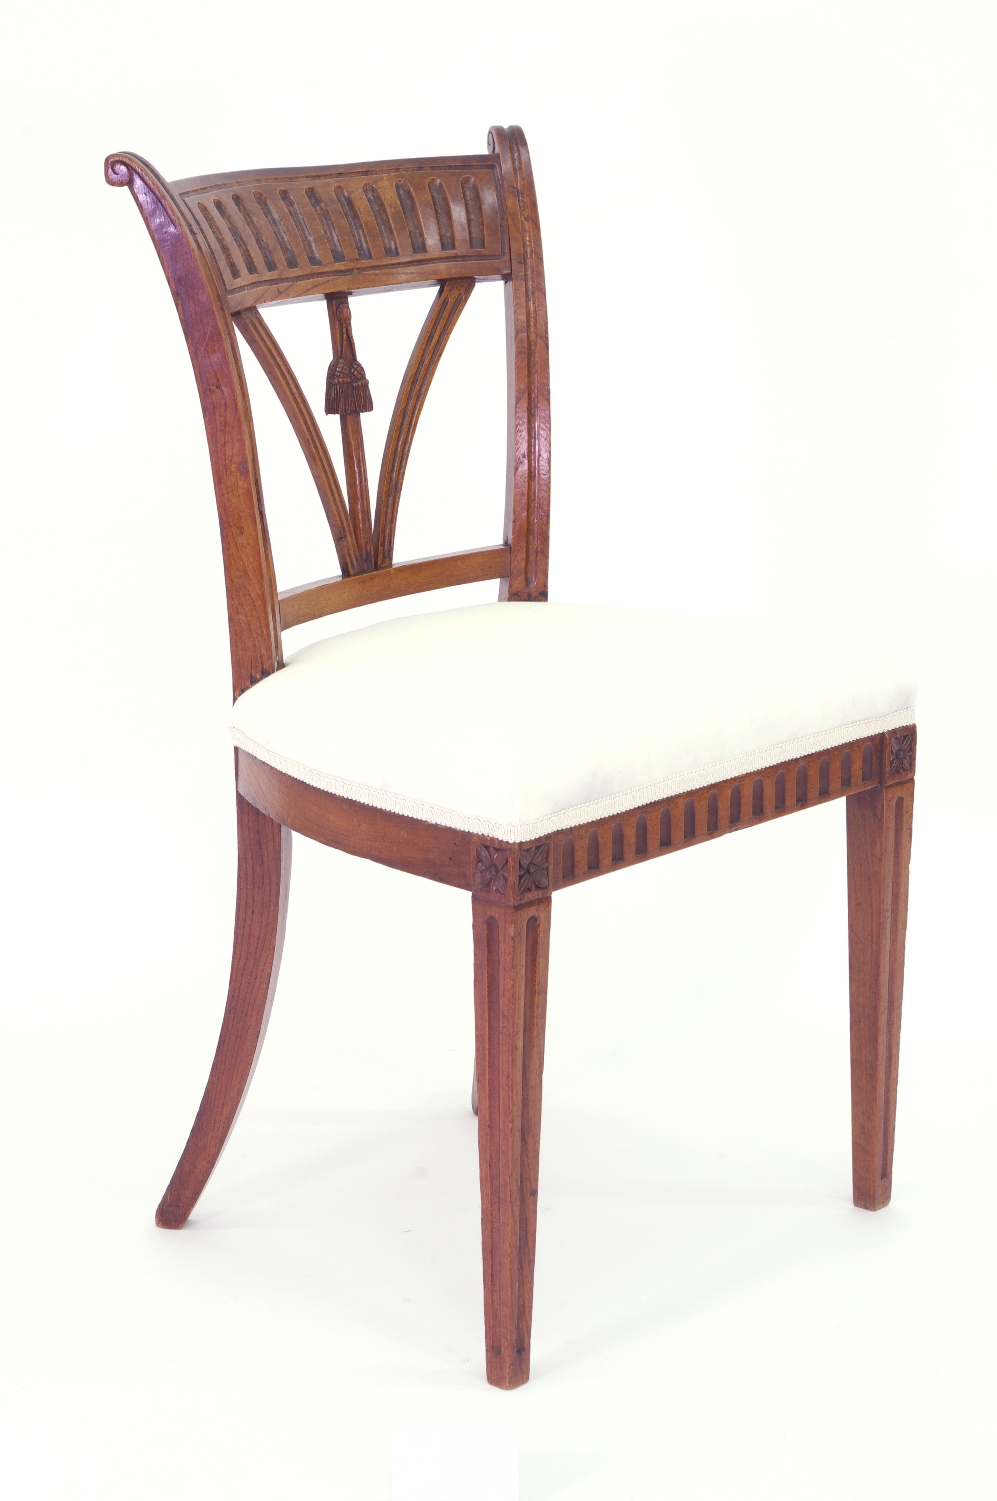 View 5: Set of Four Italian Side Chairs, c. 1800